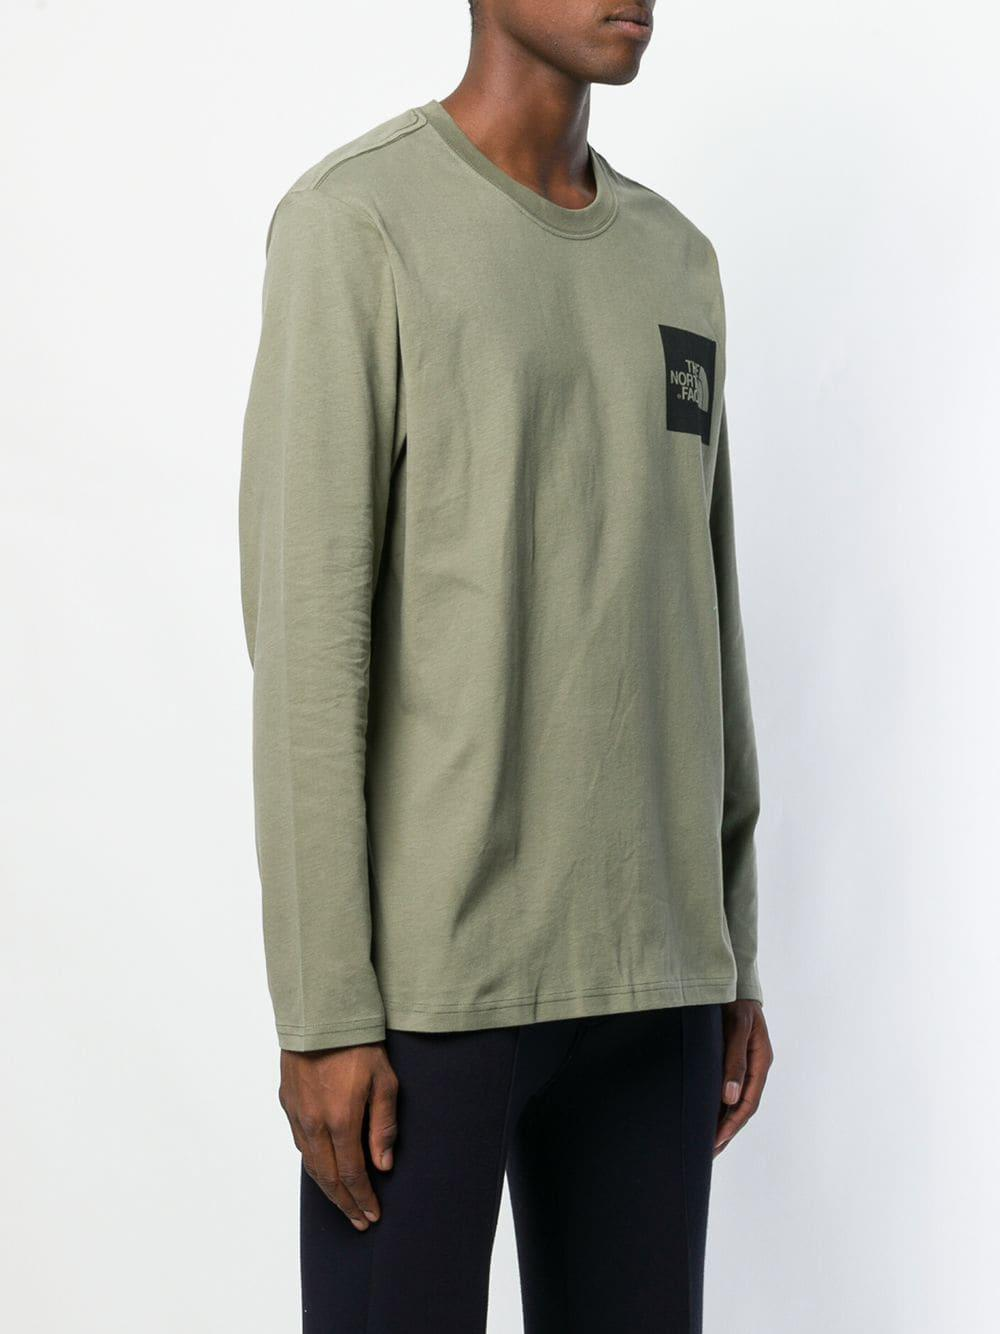 7b0a96ba6 Lyst - The North Face Loose Fitted Sweater in Green for Men